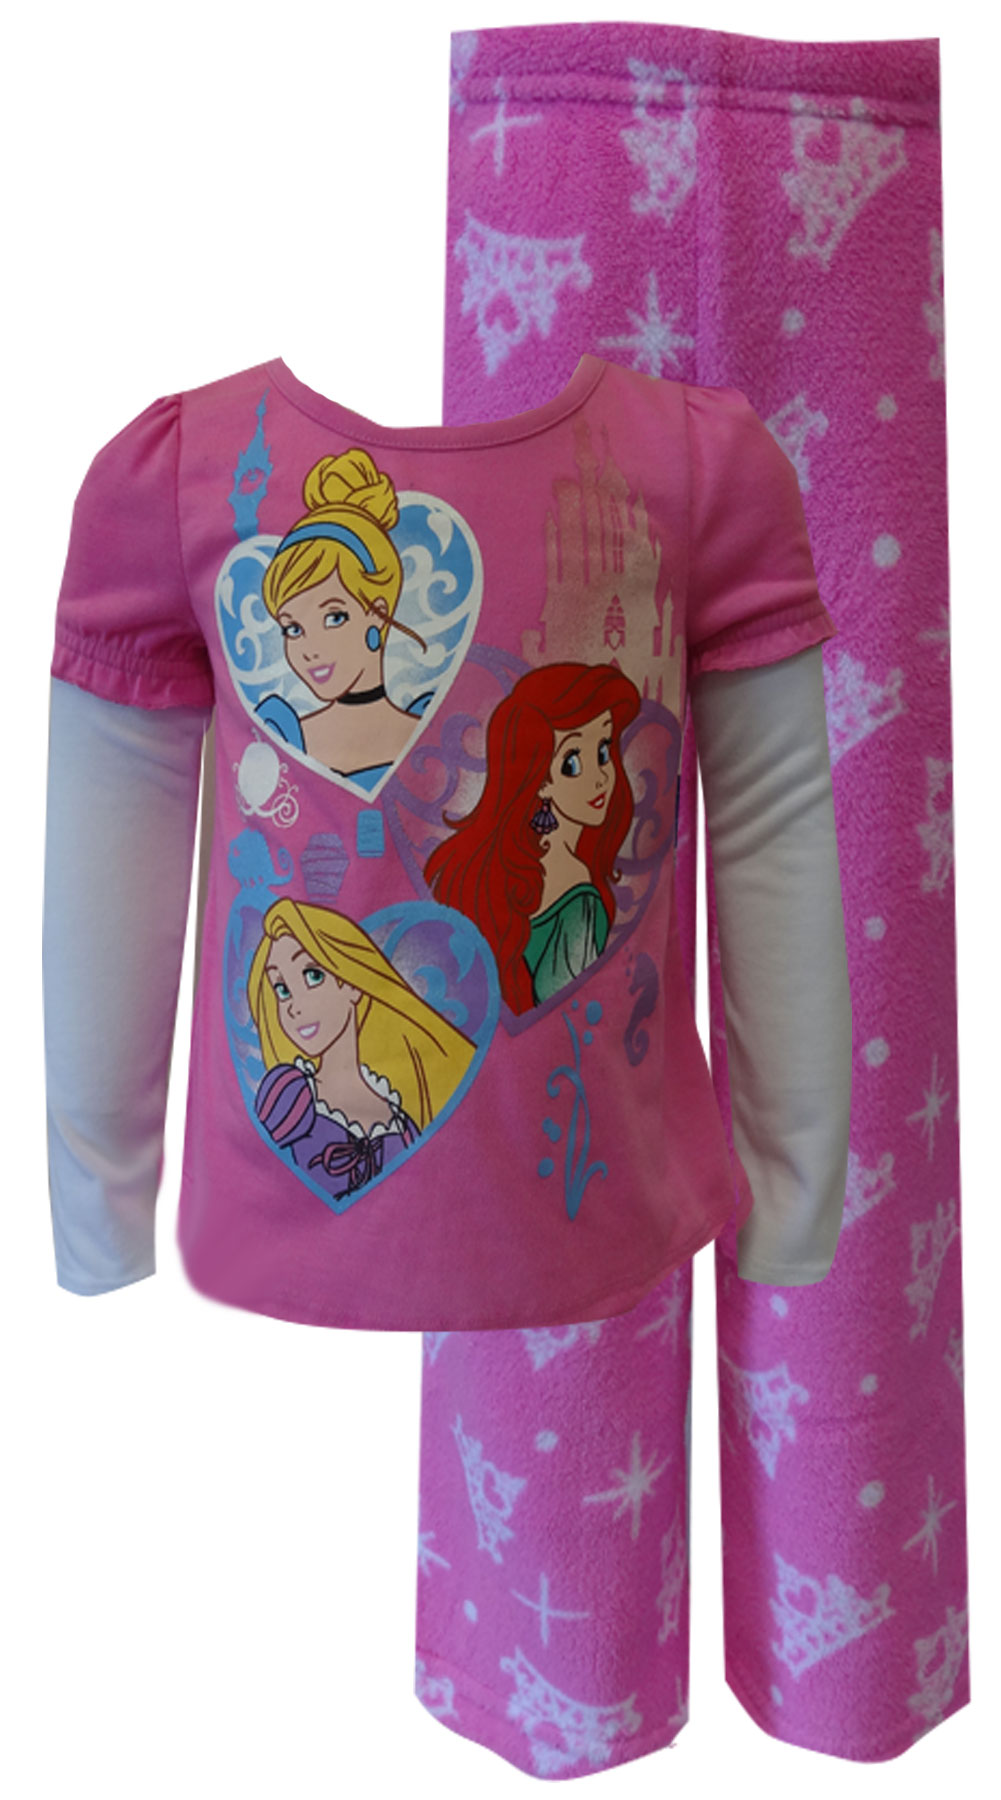 Image of Disney Princess Ariel, Rapunzel, Cinderella Toddler Plush Pajama for girls